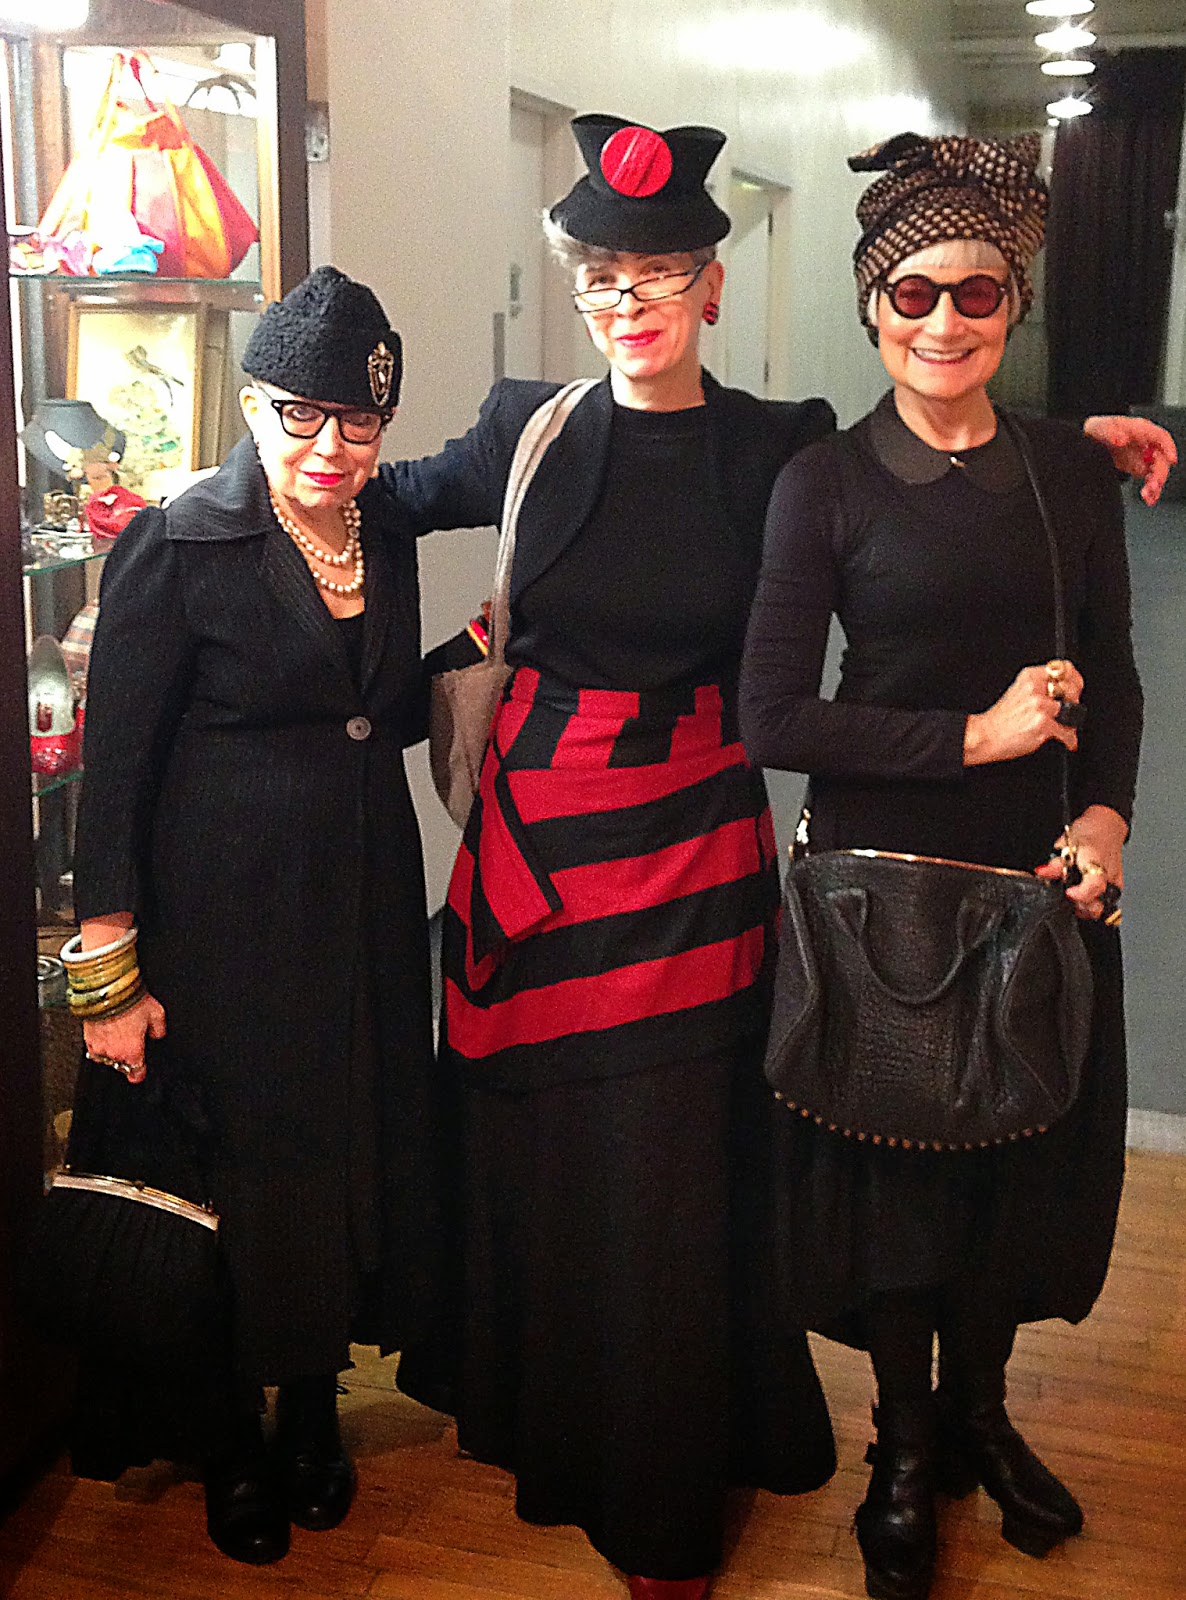 Idiosyncratic Fashionistas The Manhattan Vintage Show Can 39 T Get Enough Of That Vintage Stuff